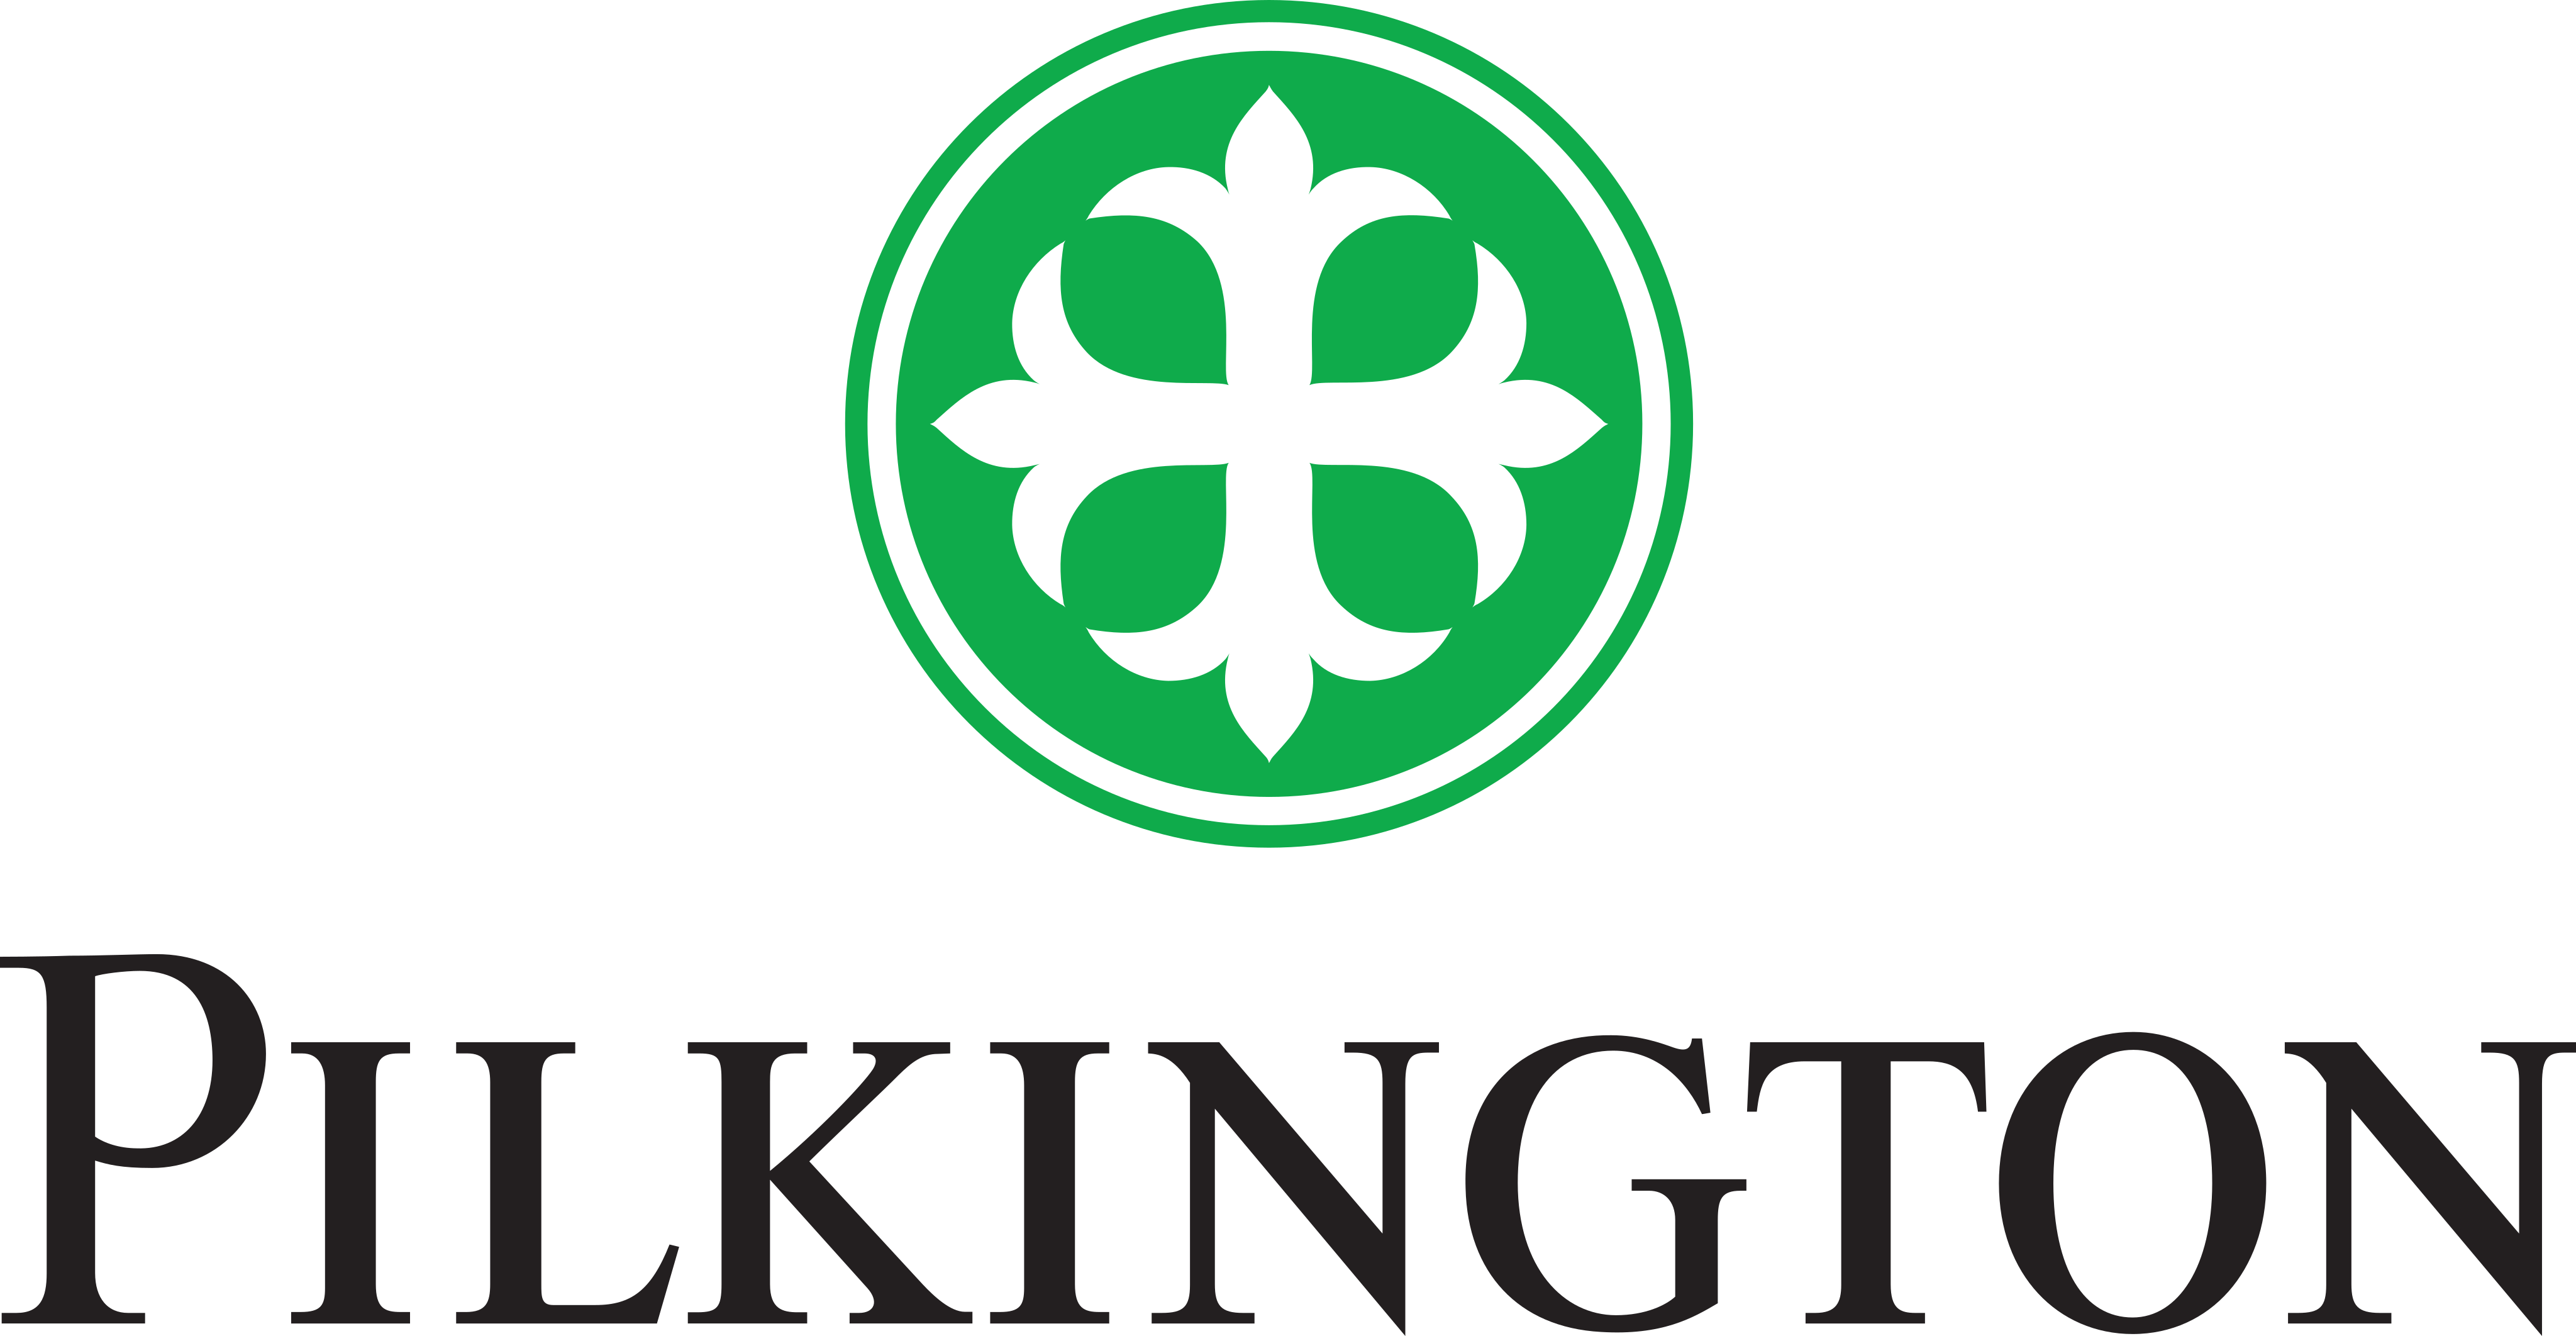 pilkington logo 1 - Pilkington Logo